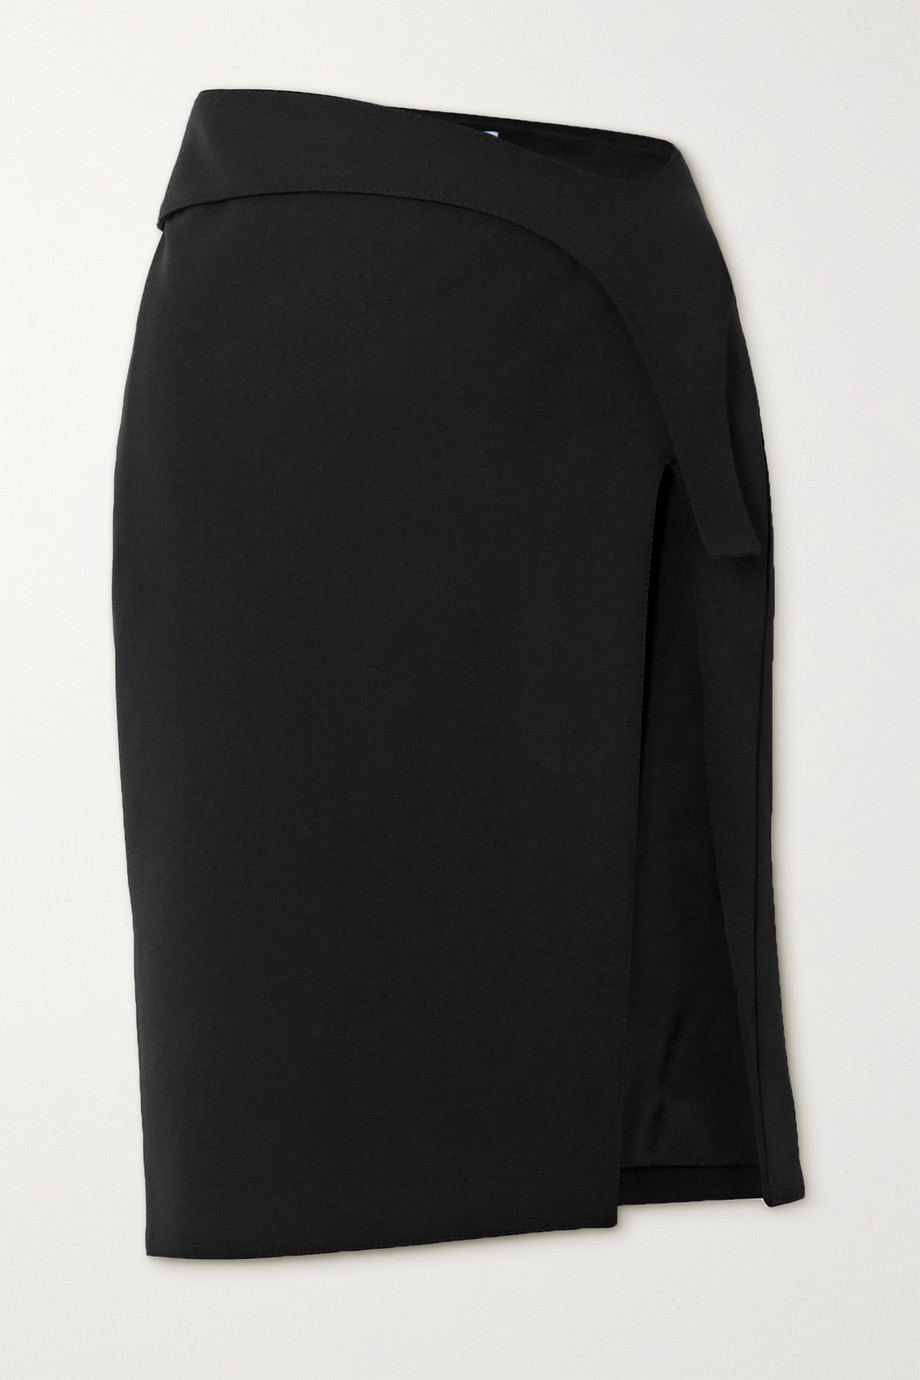 Mugler Tech-scuba skirt